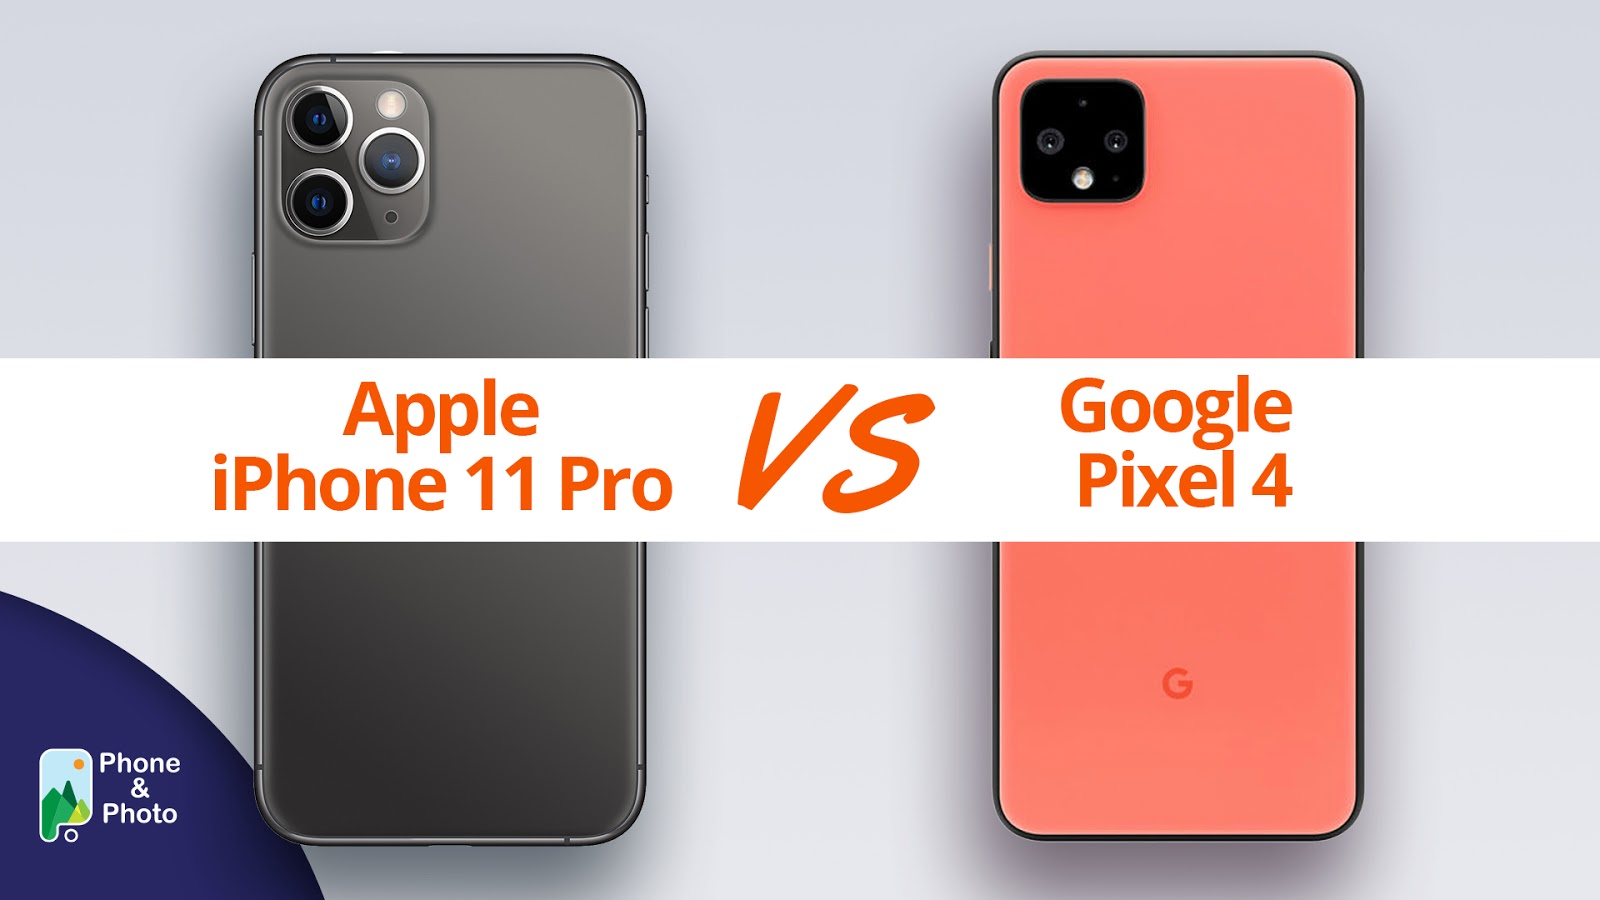 Camera Comparison: iPhone 11 Pro vs Google Pixel 4 (XL)